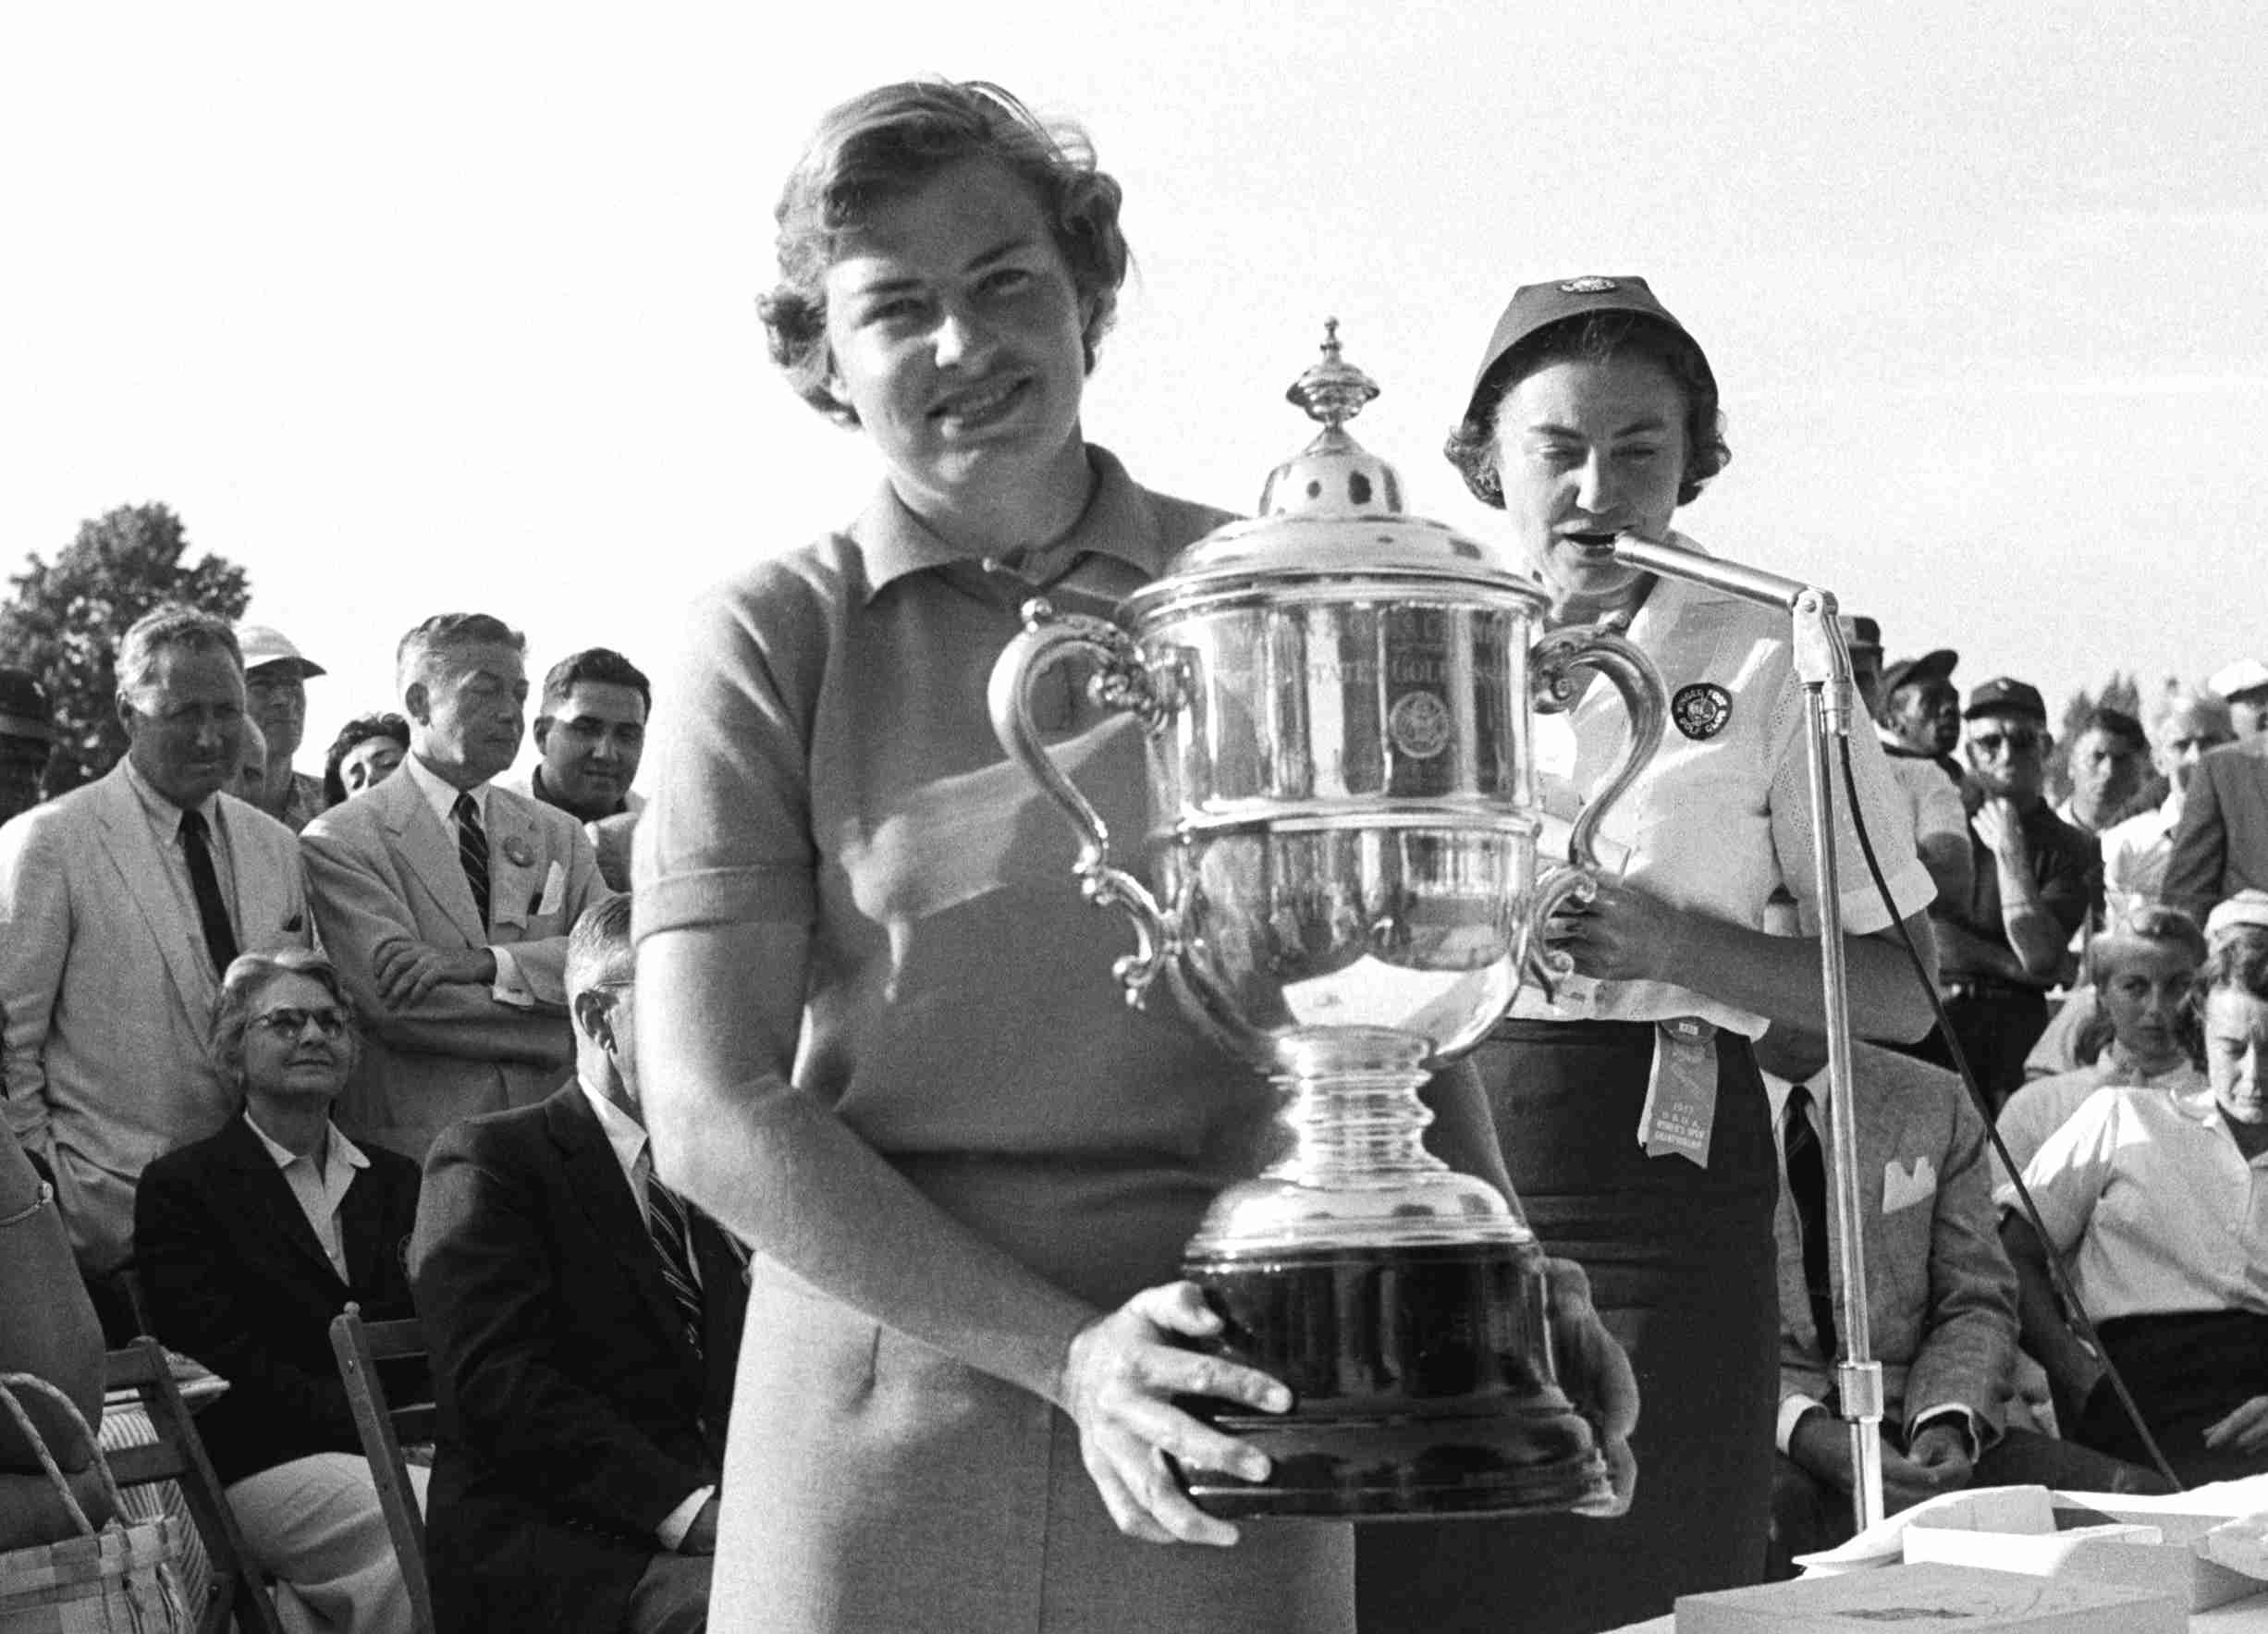 Betsy Rawls with the trophy after winning the 1957 US Women's Open.